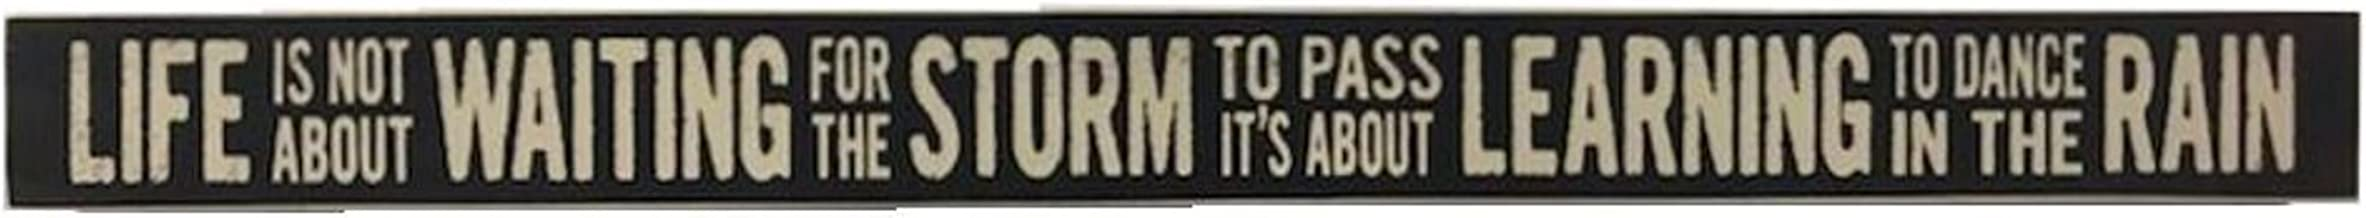 """Life is Not About Waiting for the Storm to Pass. It's about Learning to Dance in the Rain Sign/Plaque, 18x1.5"""", Black"""